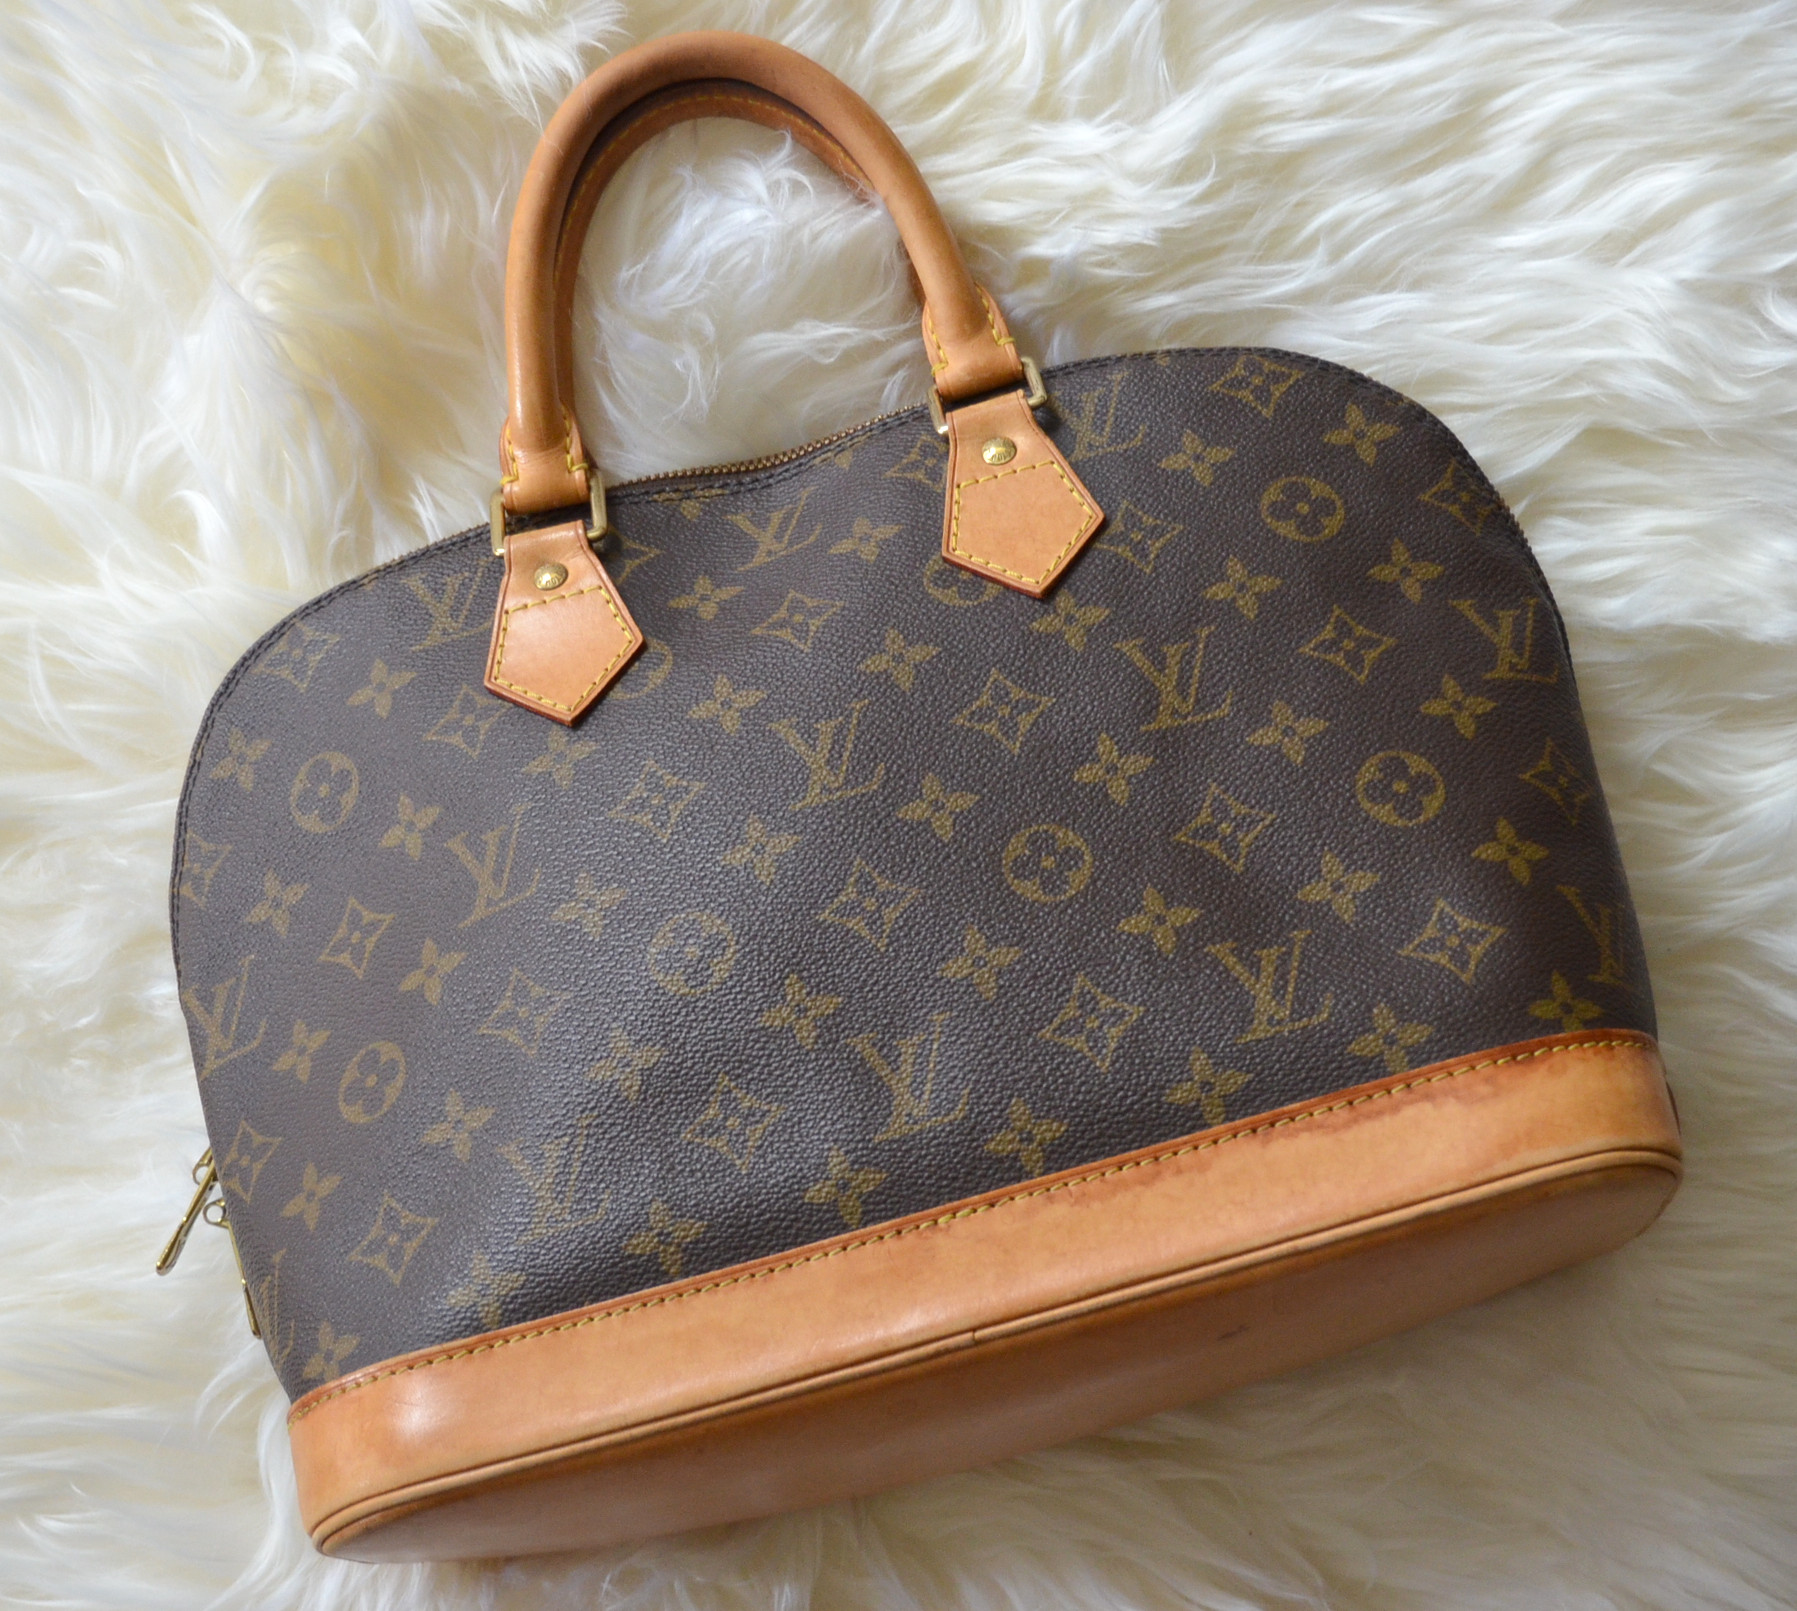 vintage Louis Vuitton Alma PM monogram handbag